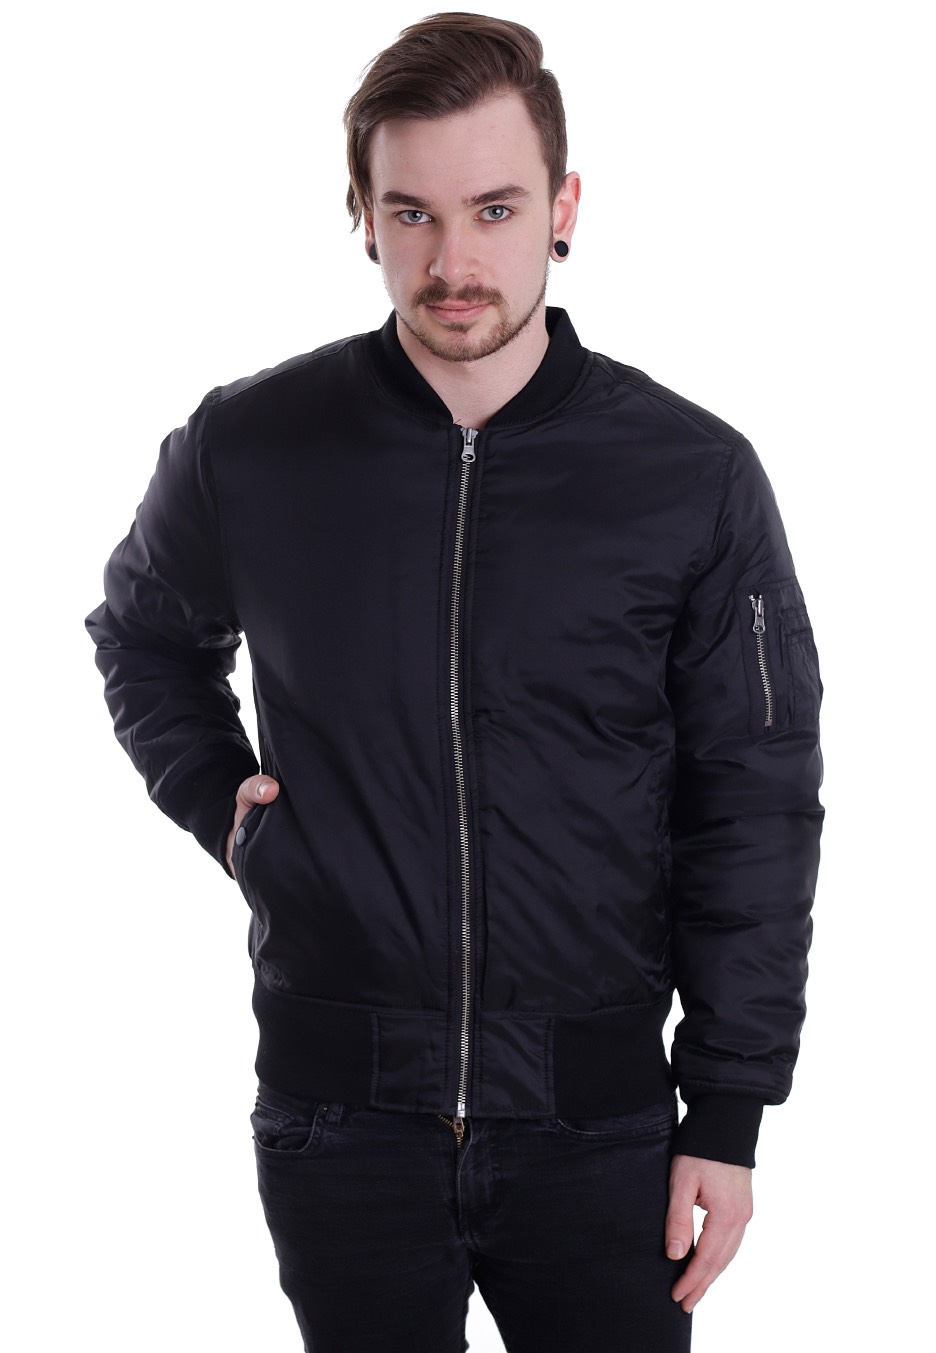 Find great deals on eBay for bomber jackets. Shop with confidence.